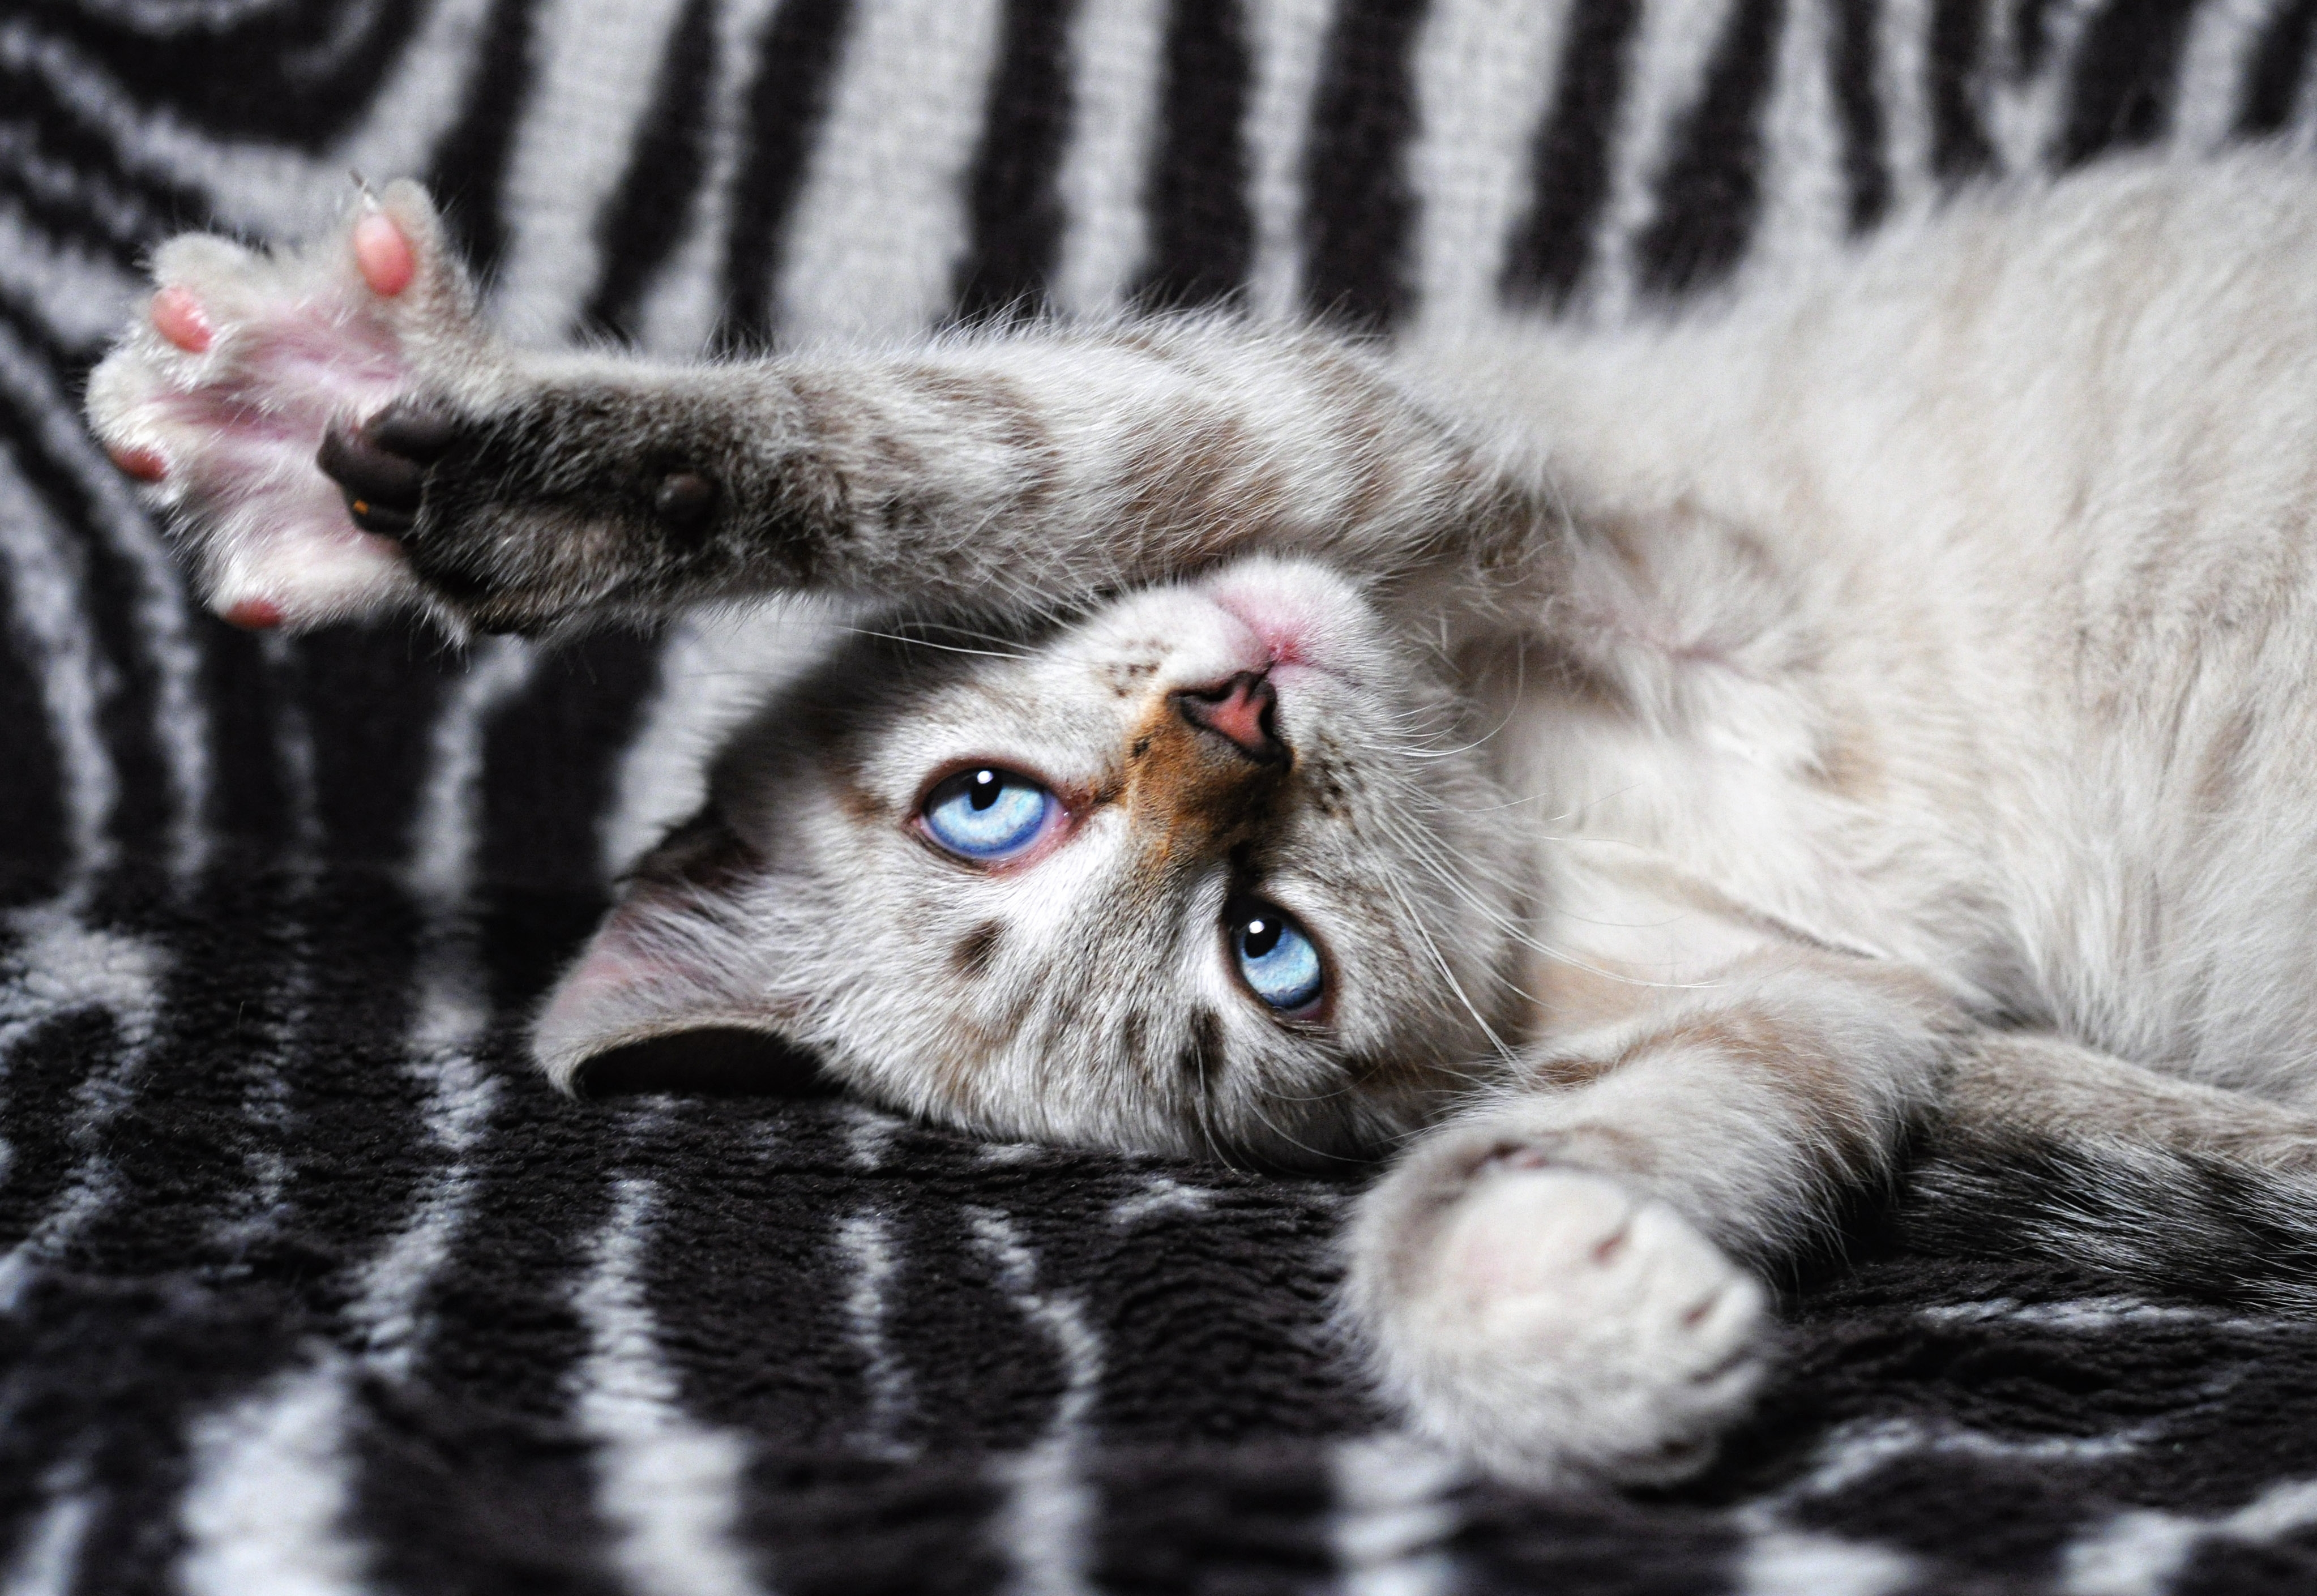 150191 download wallpaper Animals, Cat, Lies, Playful, Paws screensavers and pictures for free